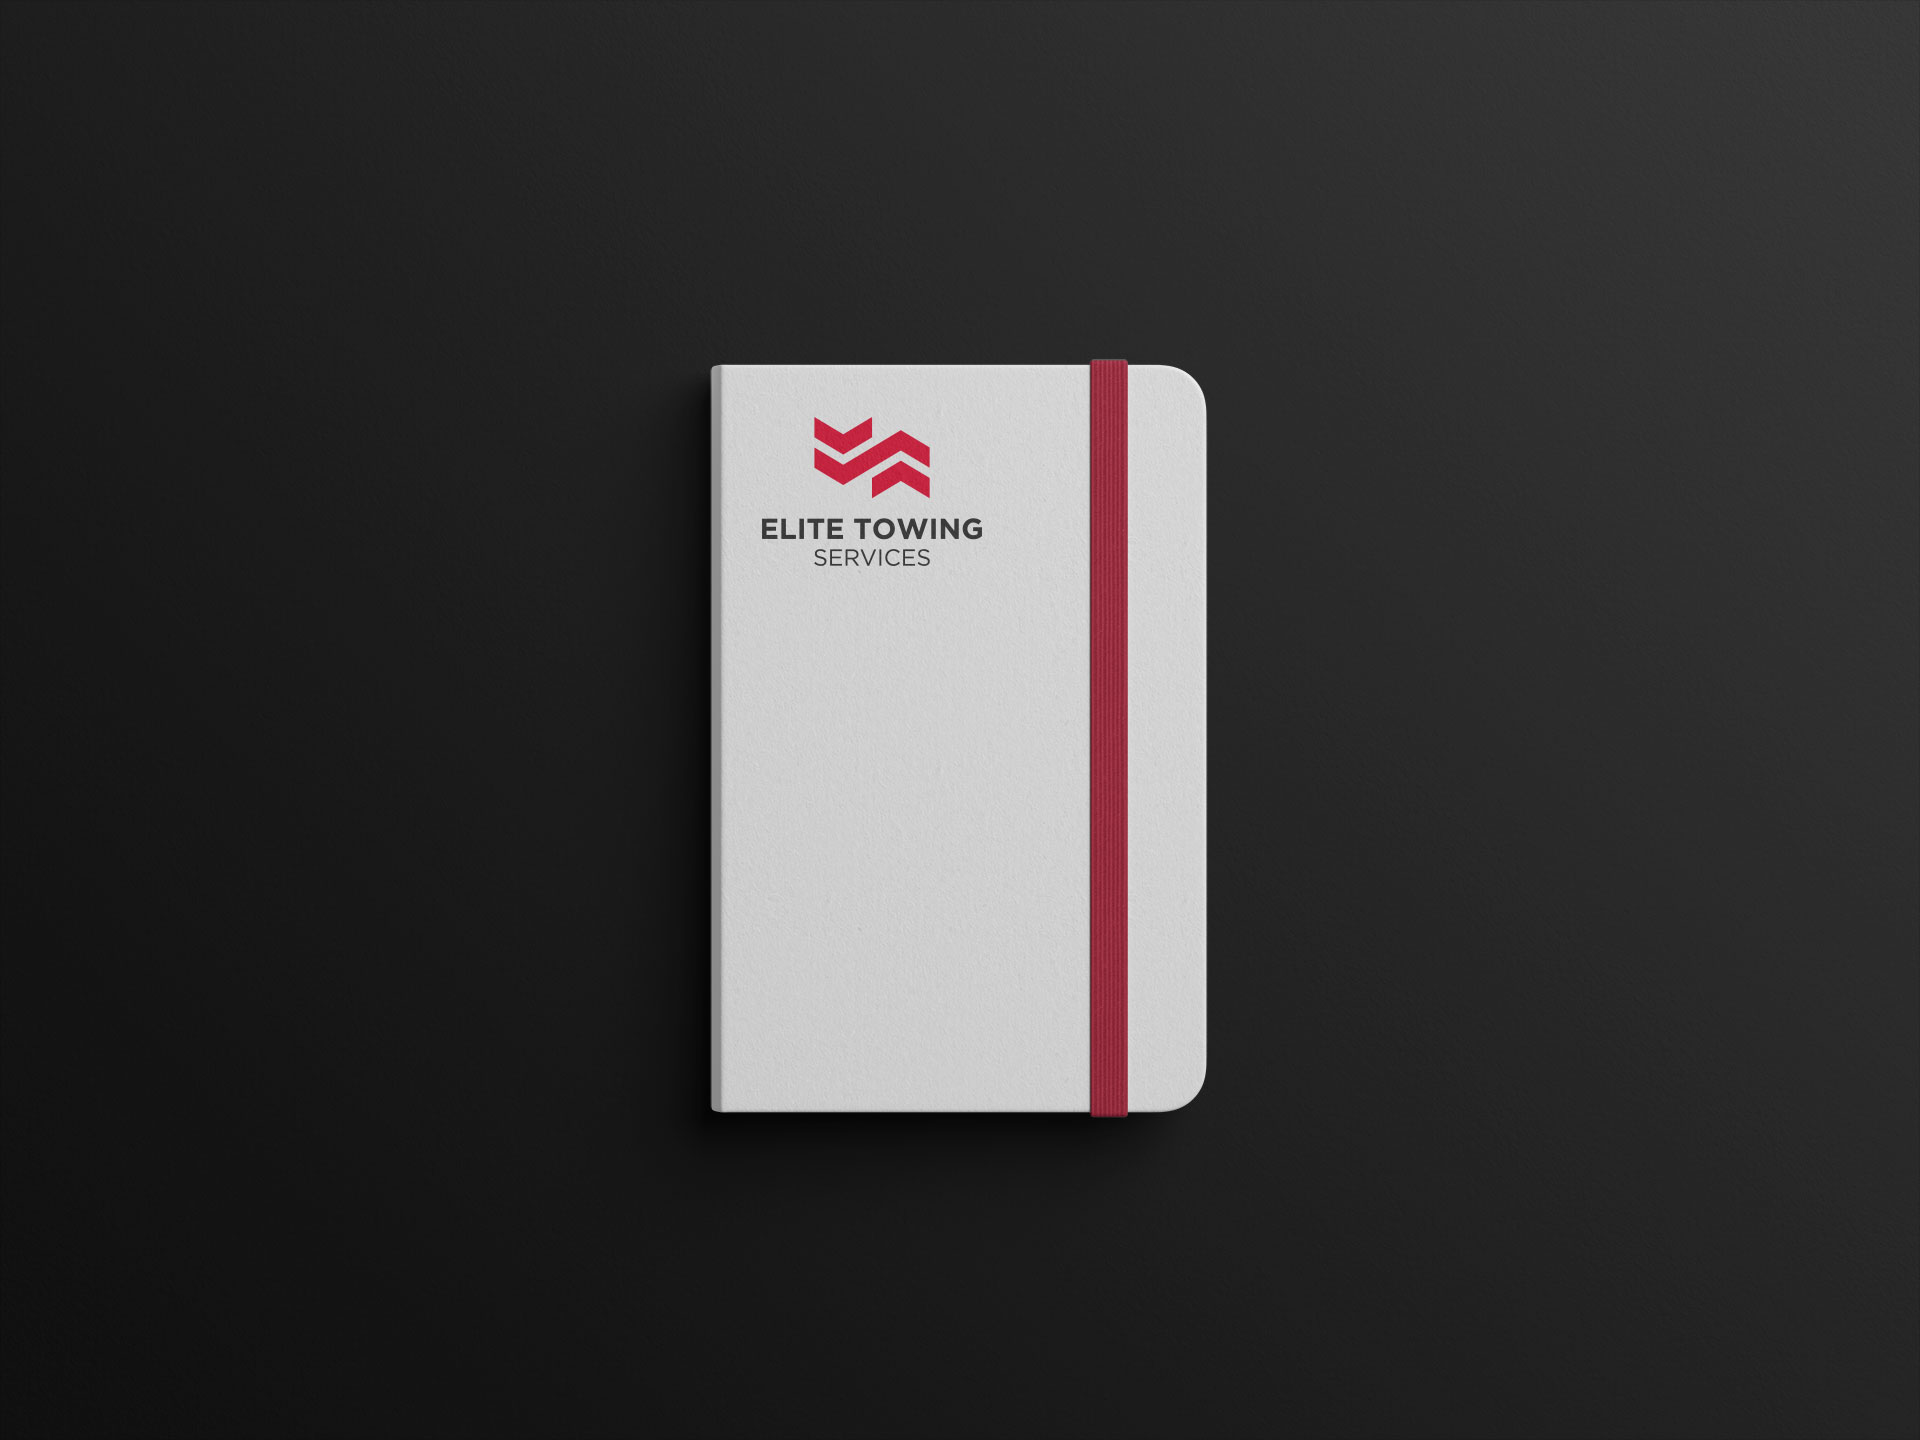 Elite Towing Services Notepad White